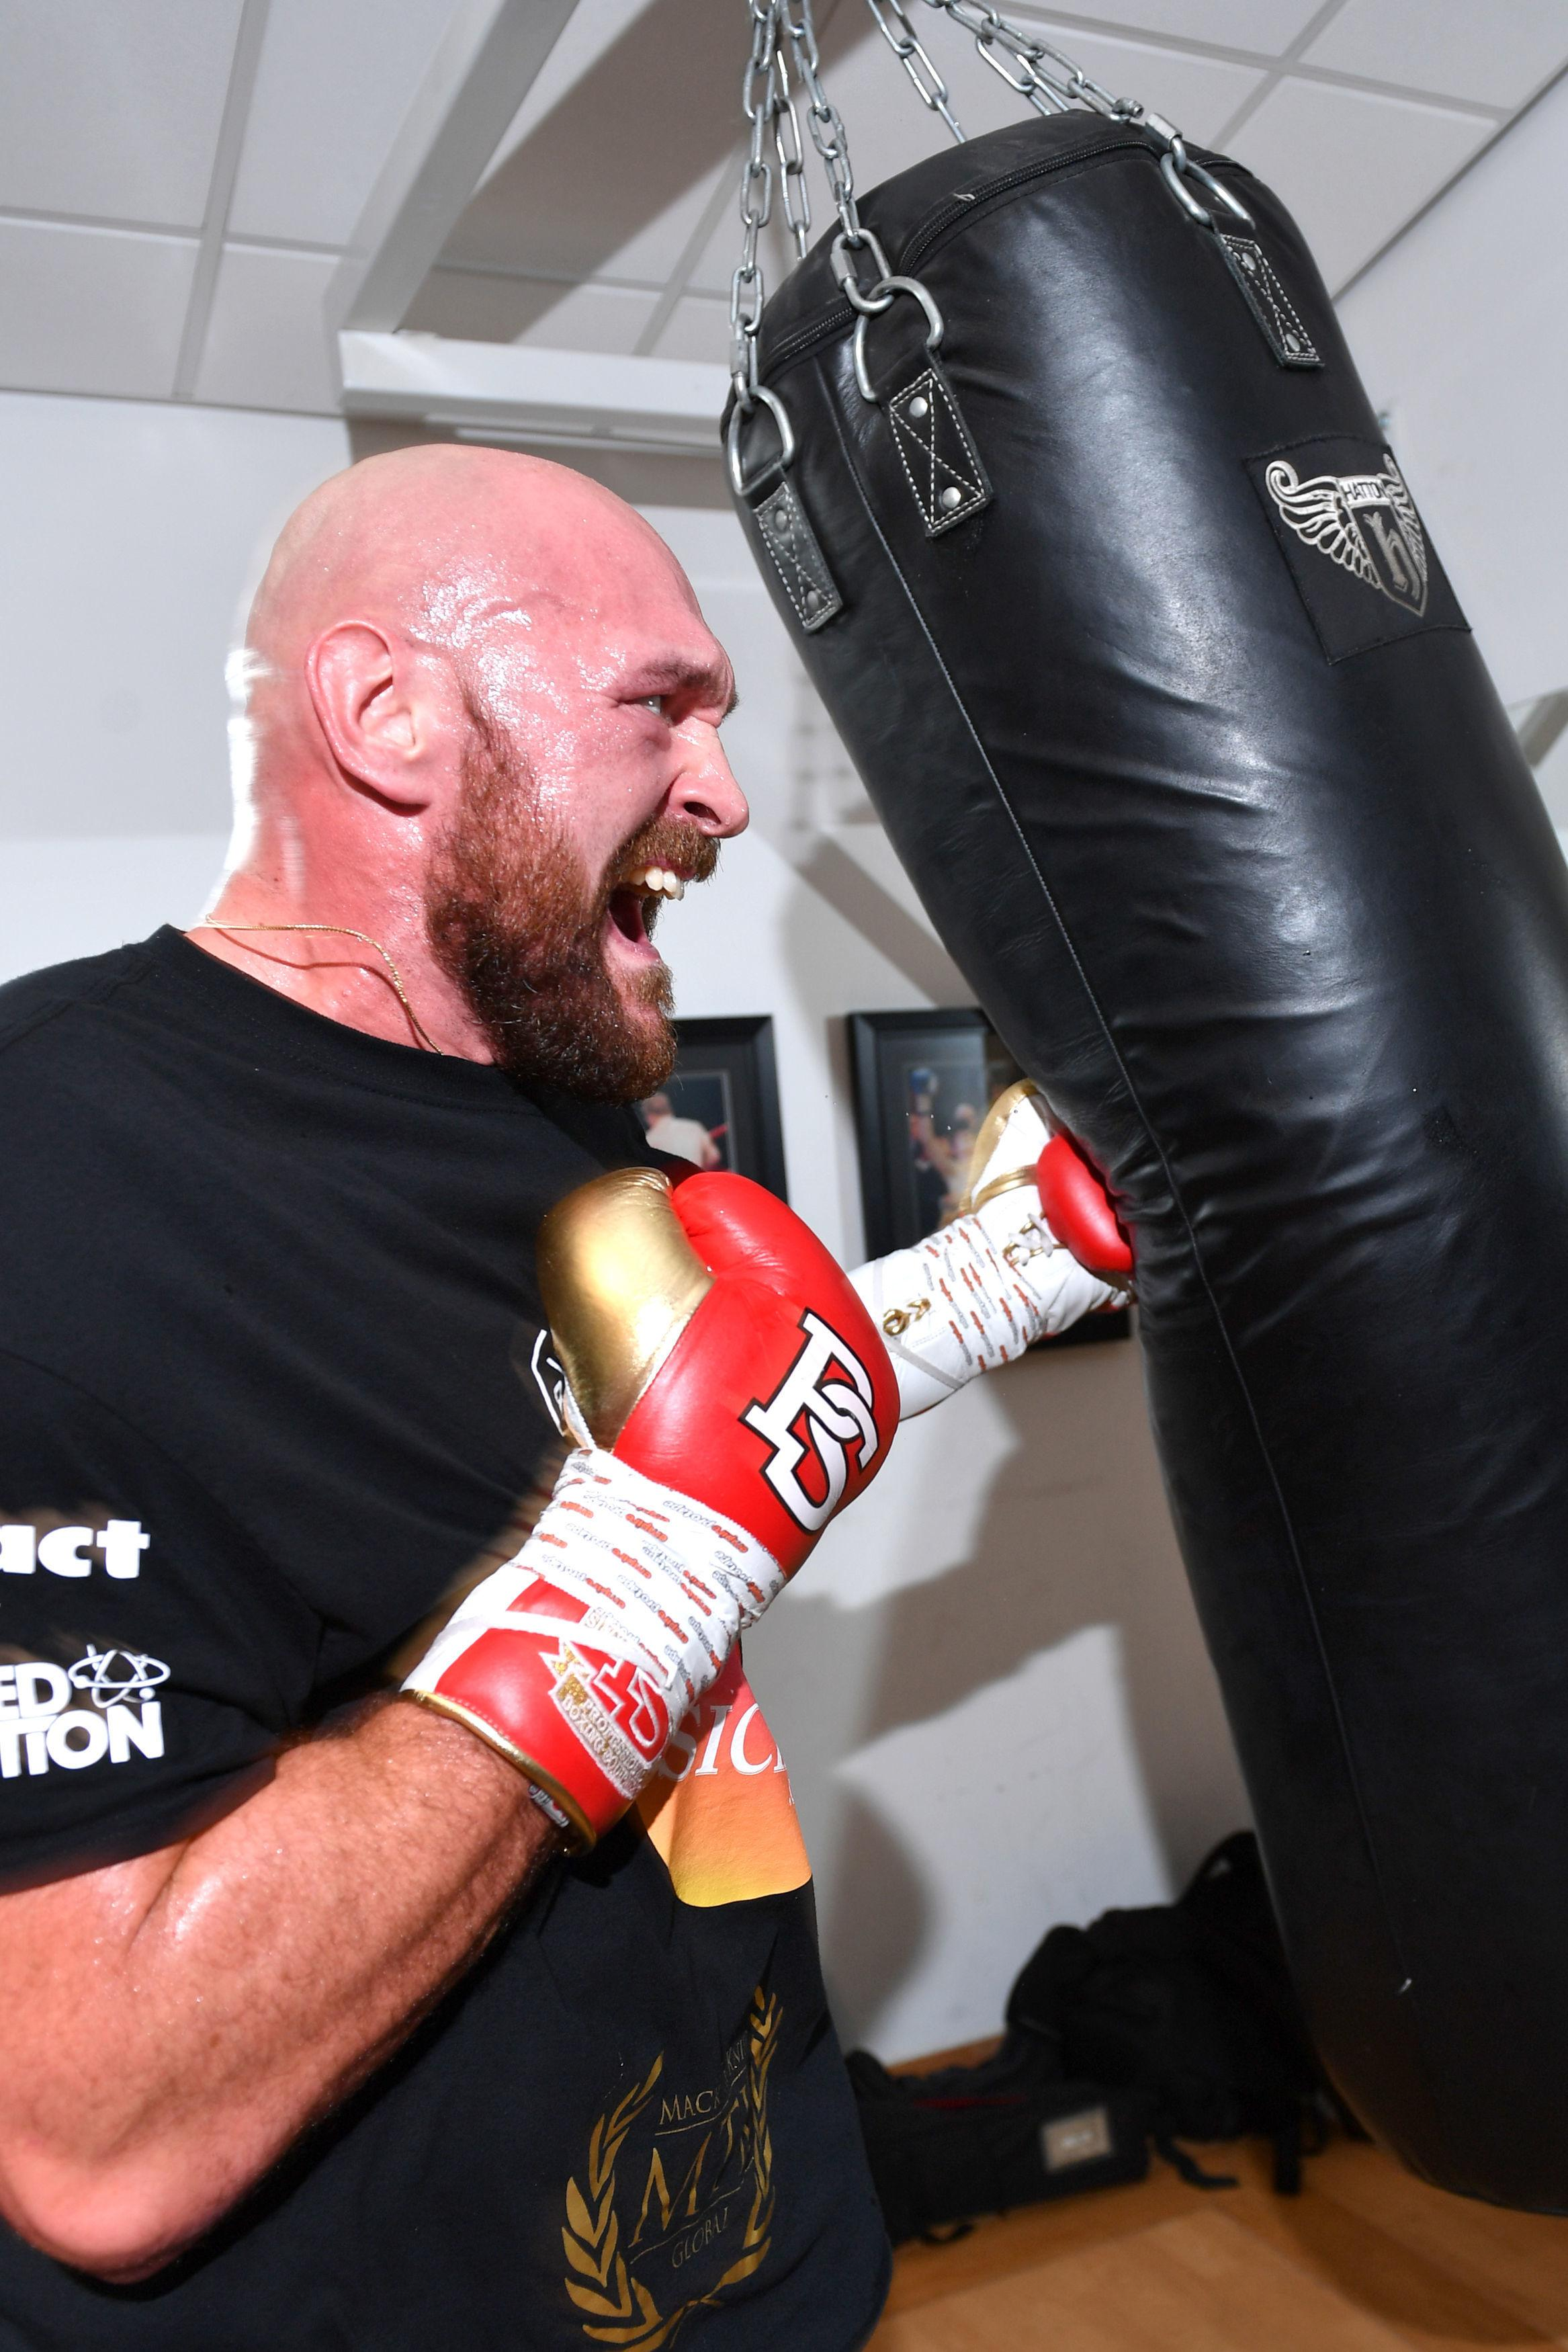 Tyson Fury has been given a one-week deadline to sign up to WBC random drug testing